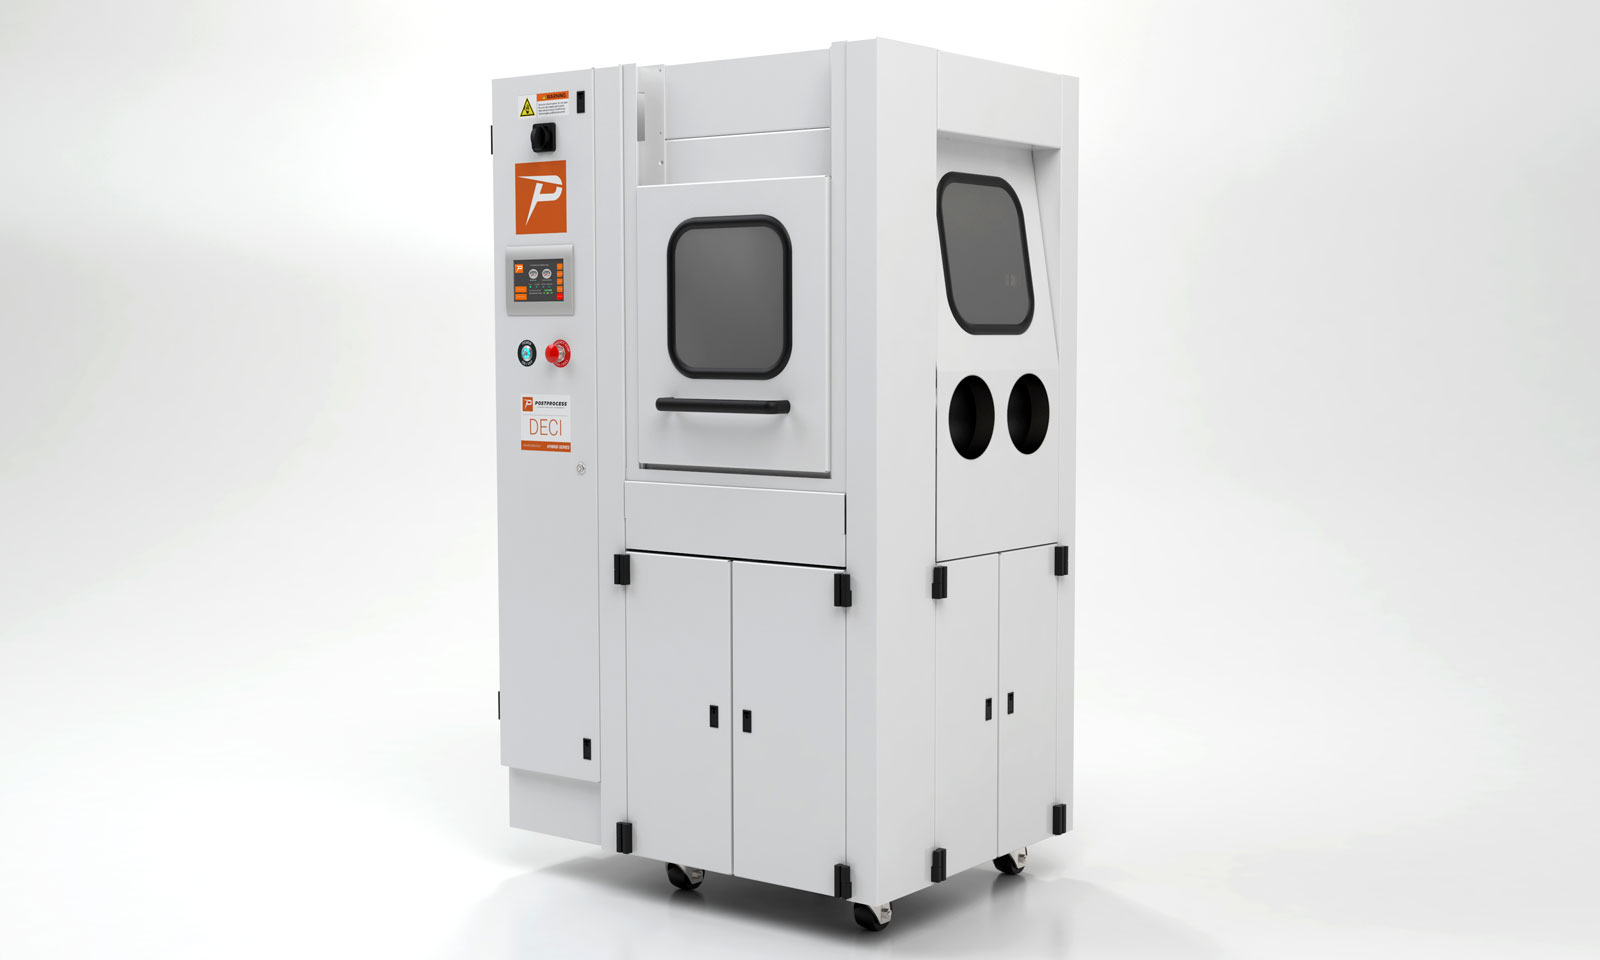 The PostProcess Deci Duo hybrid unit can clean and surface polish 3D prints